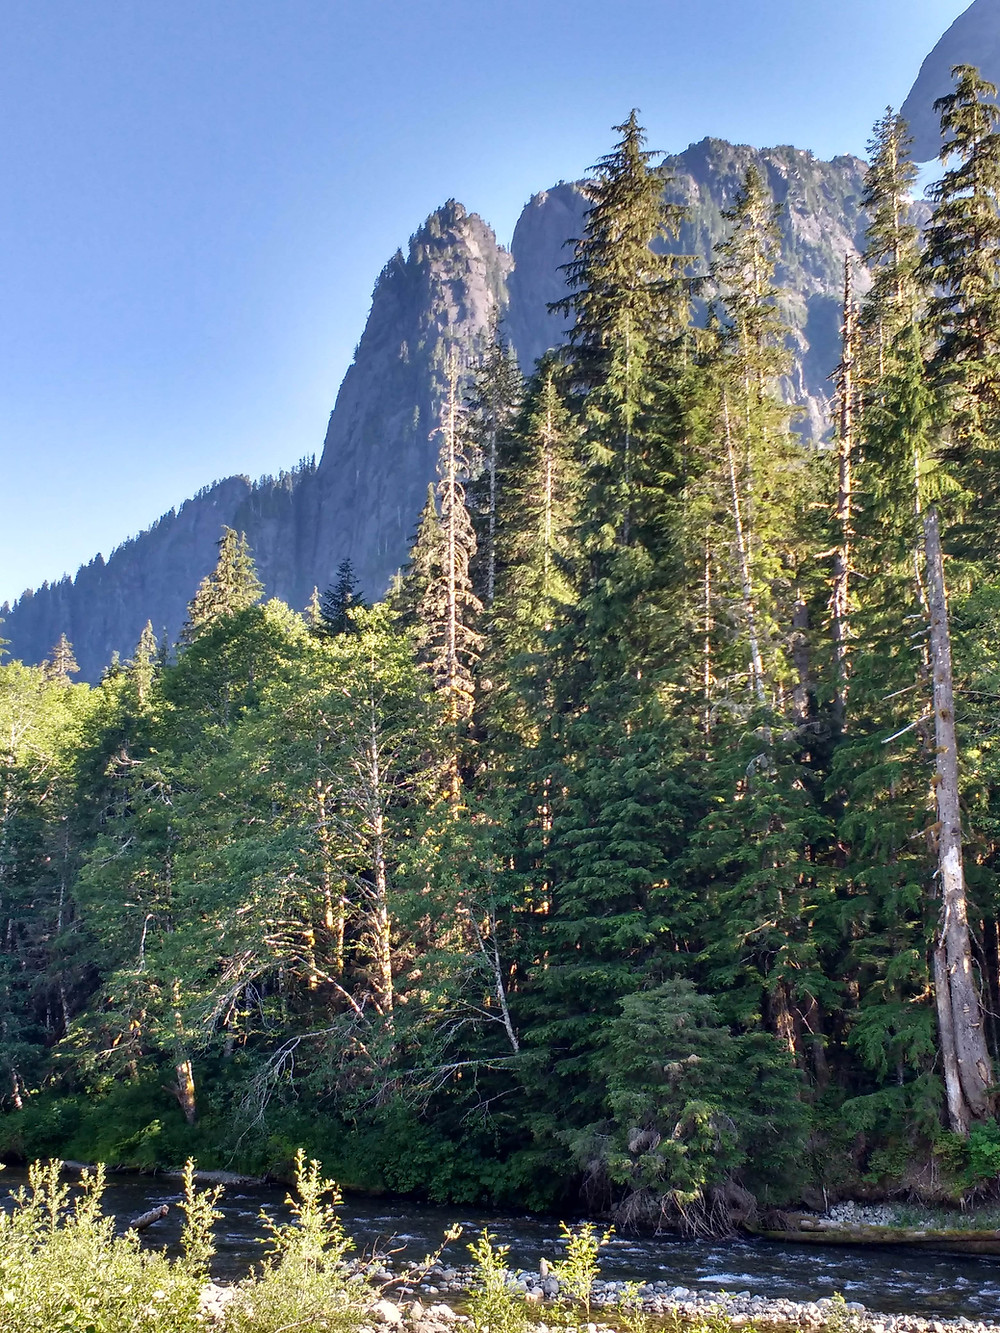 a river flows by stately evergreens in the foreground, as the steep cliffs of Mazama tower in the background. Washington